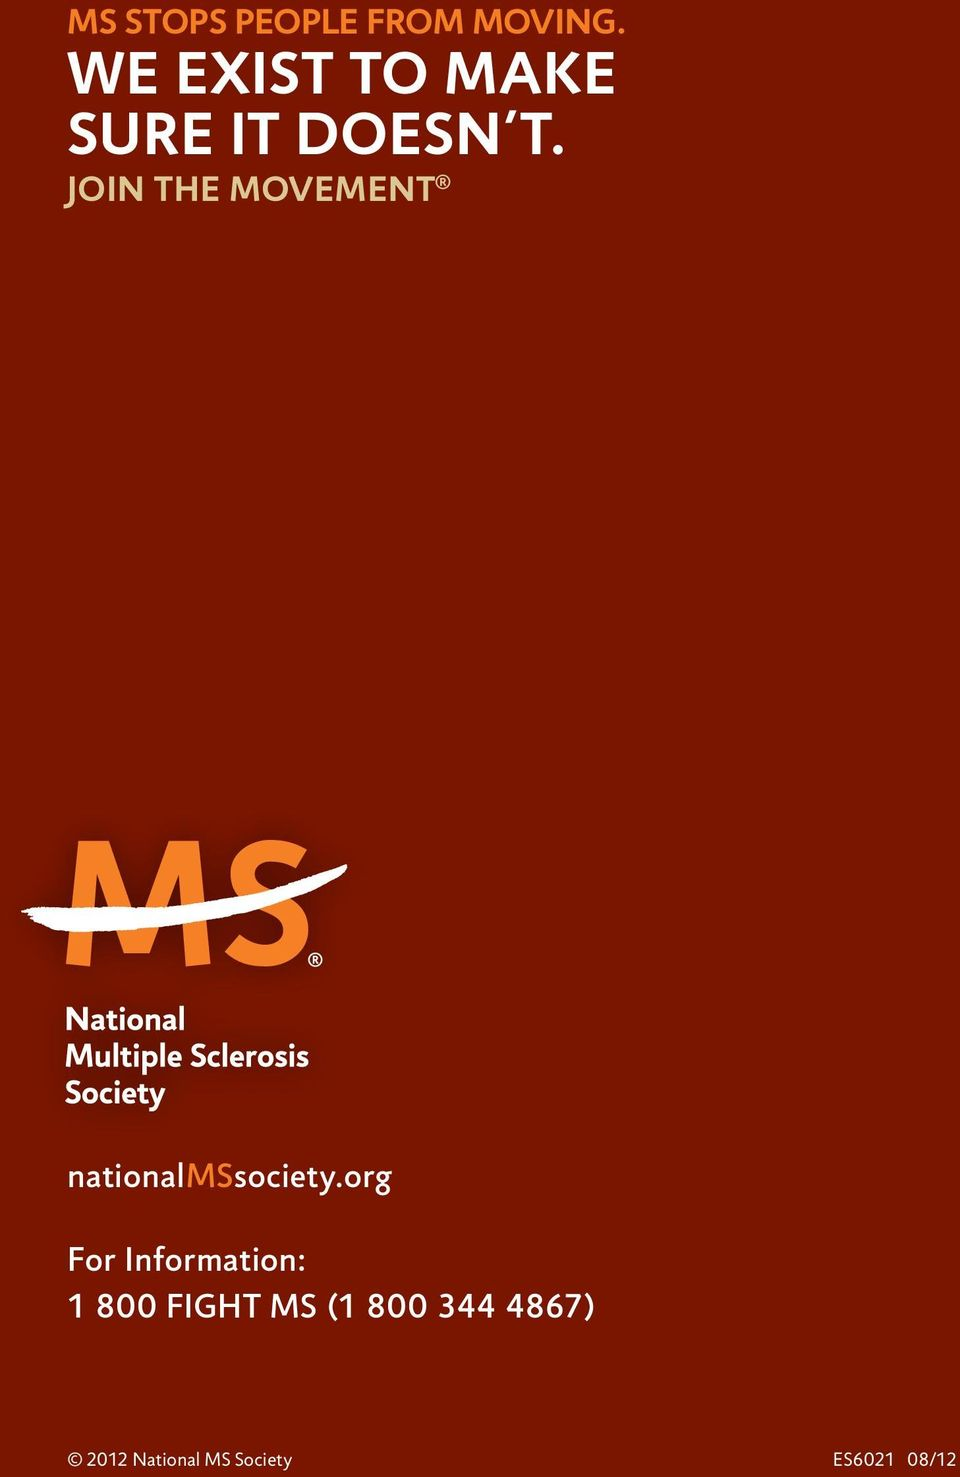 Join the Movement nationalmssociety.